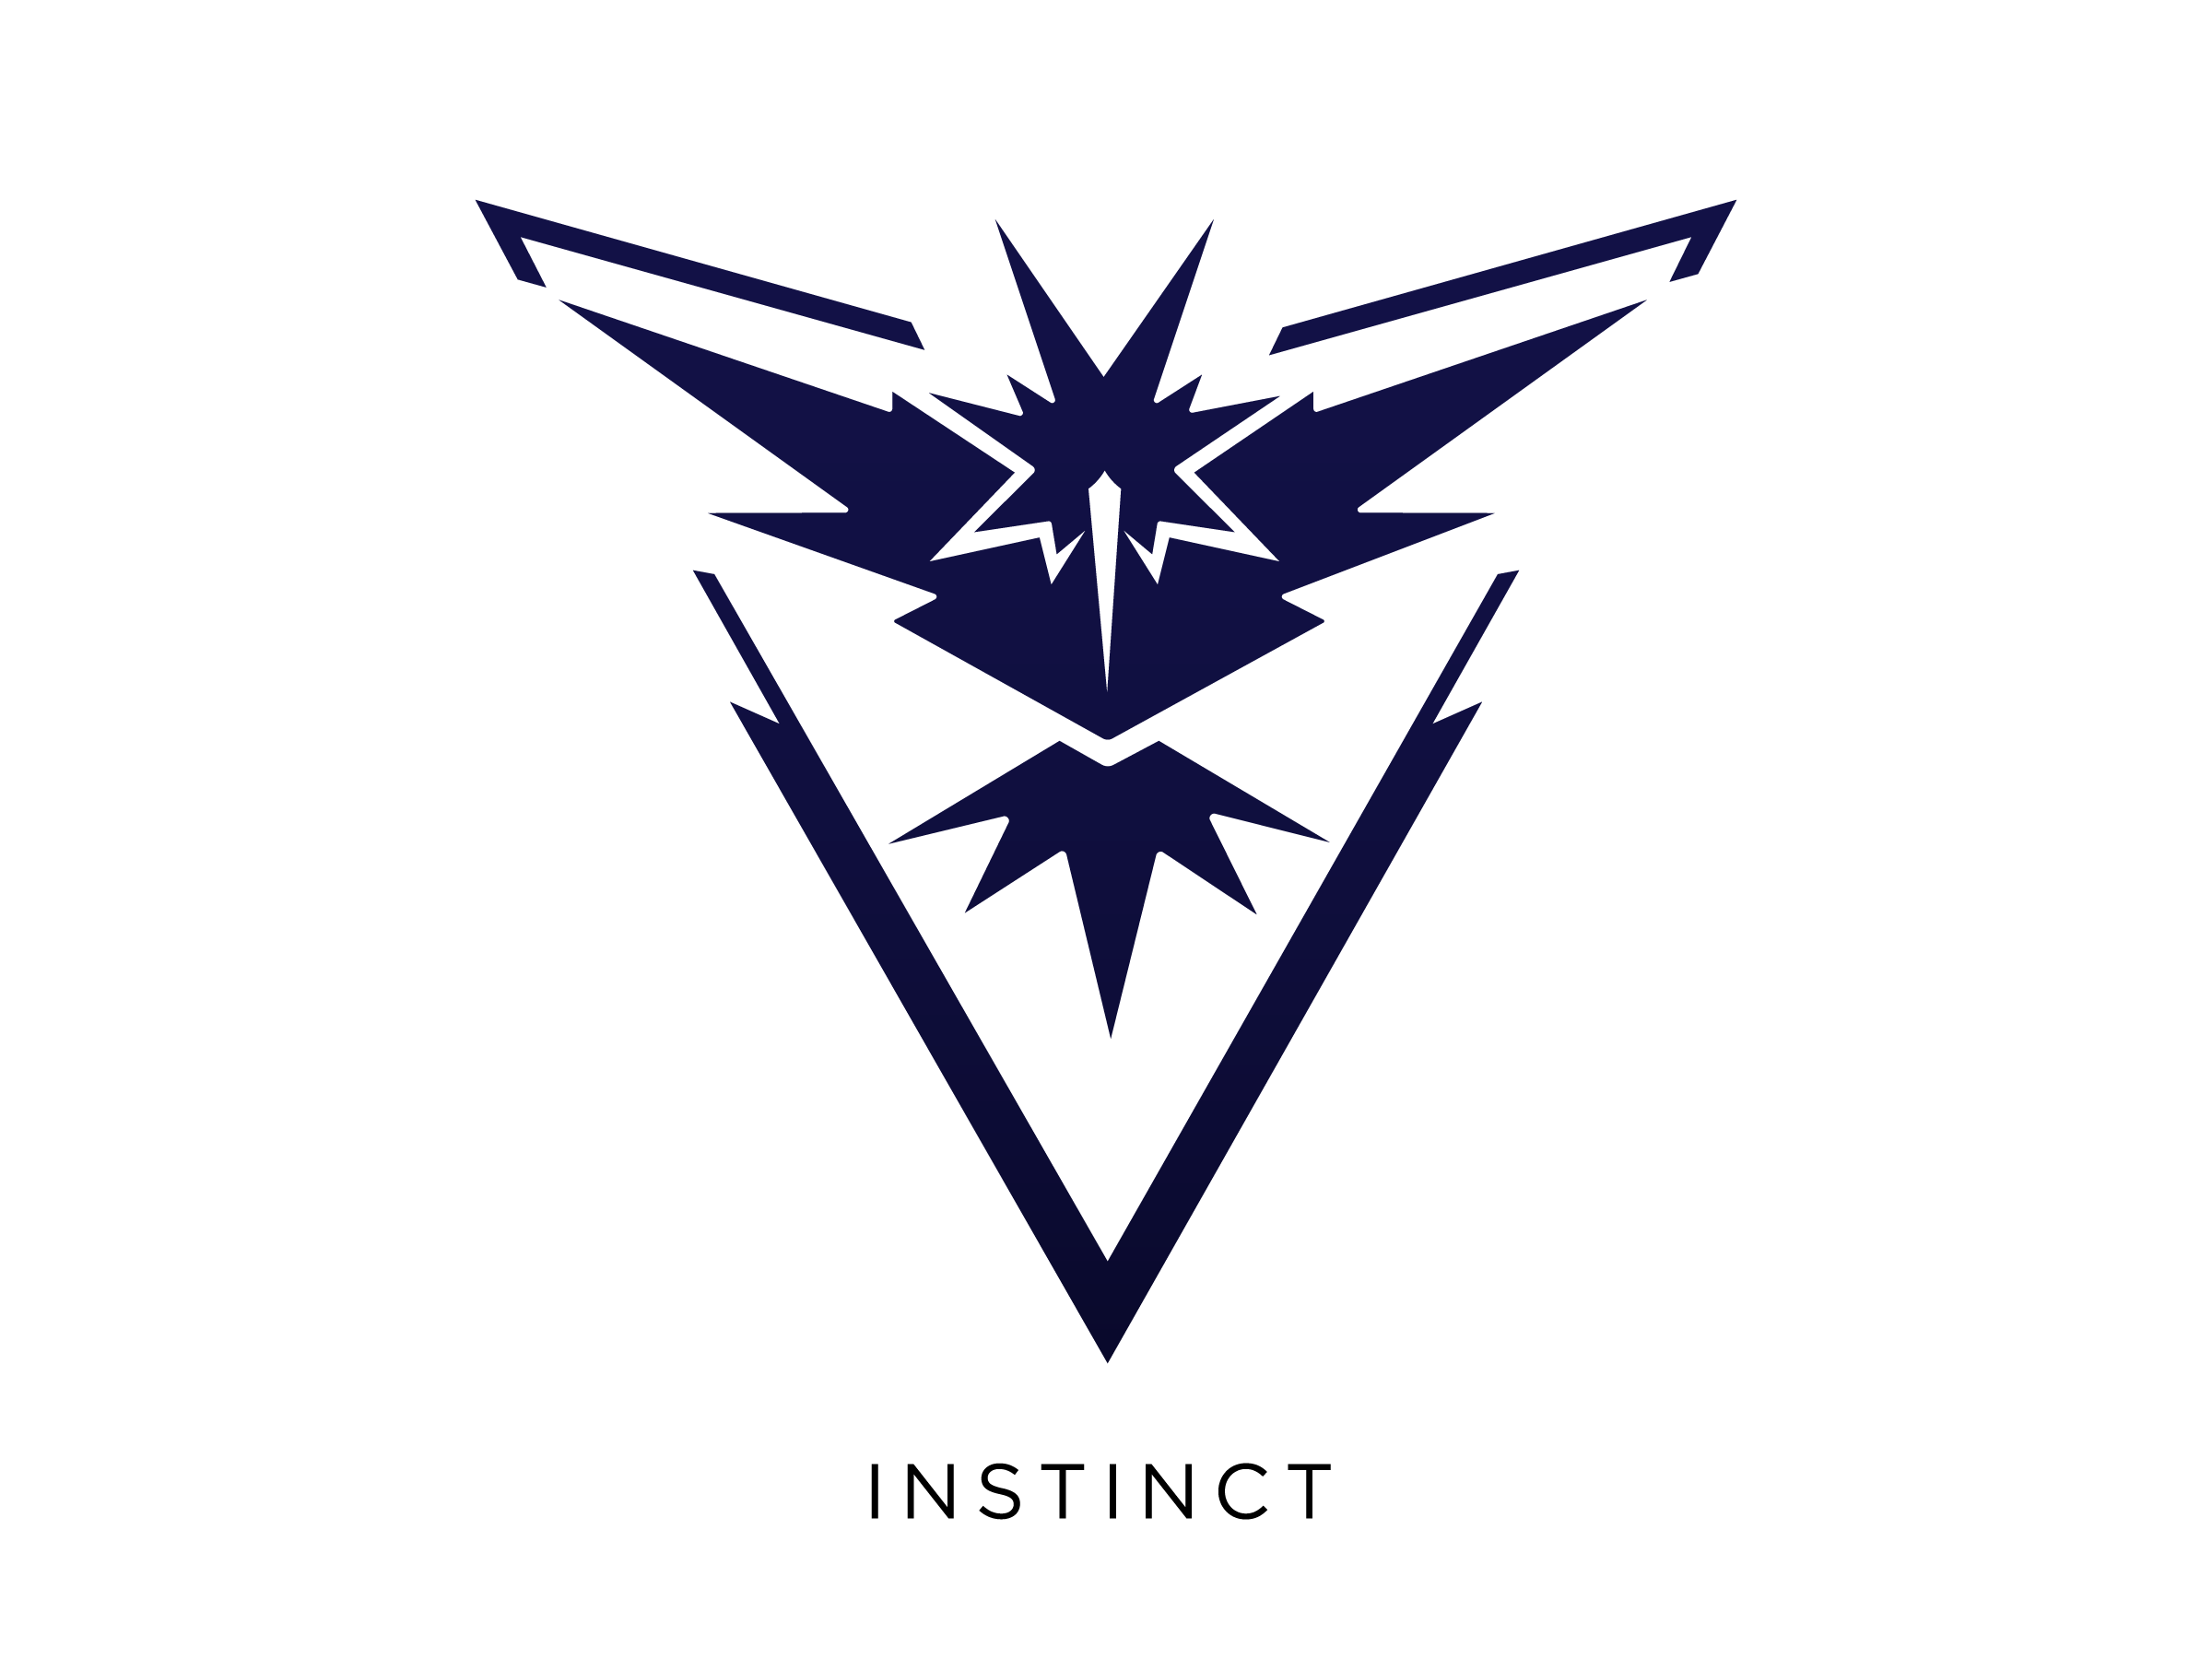 Pokemongo team logos instinct